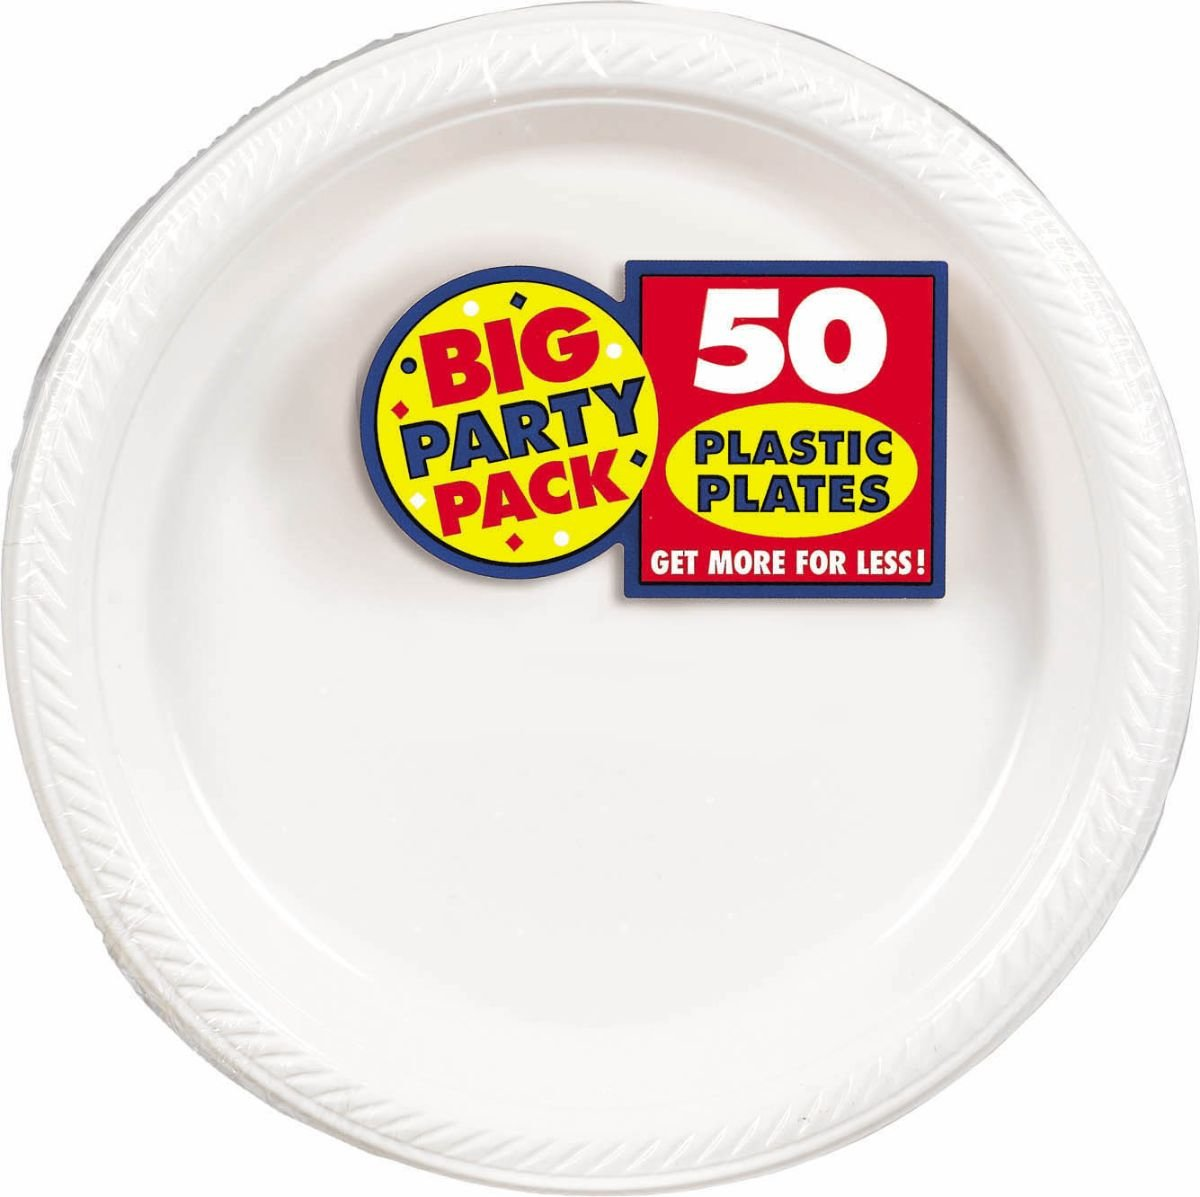 Amscan Big Party Pack 50 Count Plastic Lunch Plates, 10.5-Inch, White (630732.08)